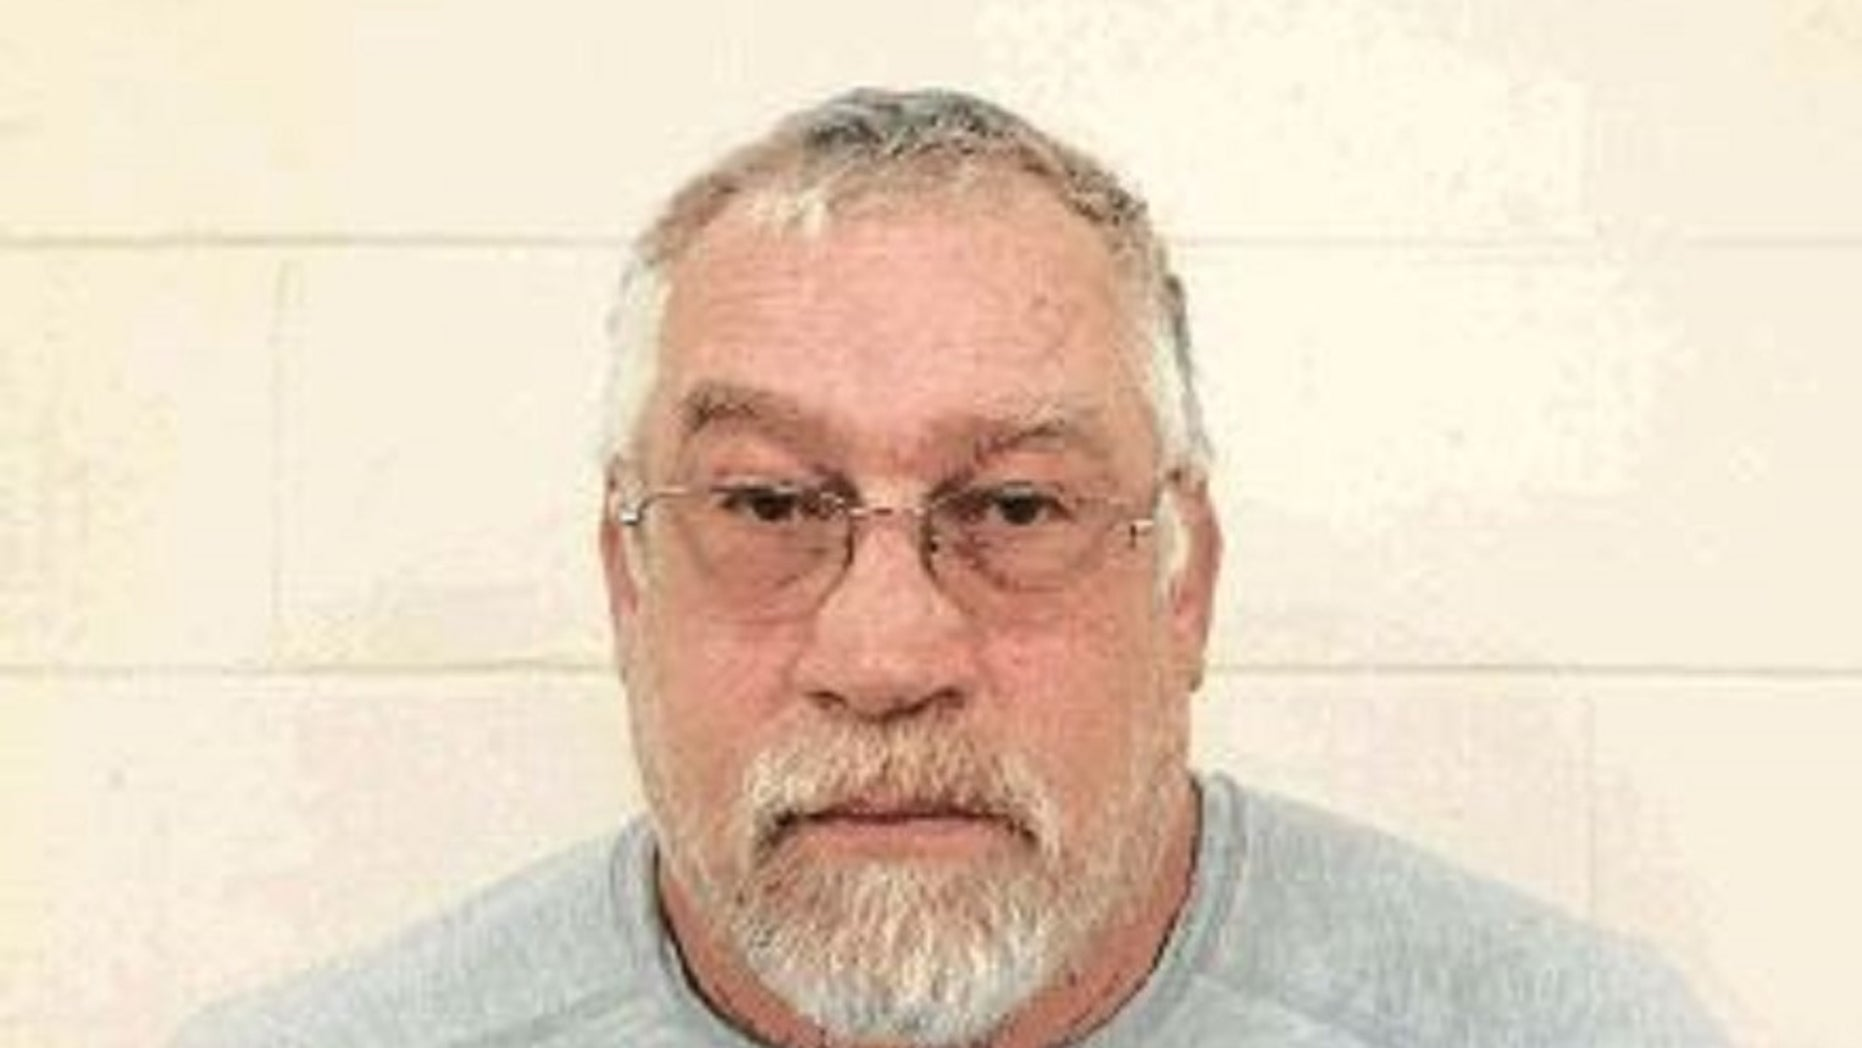 Craig W. Dittmar, 55, is charged with reckless homicide and operating a motor vehicle while fatigued, authorities say.